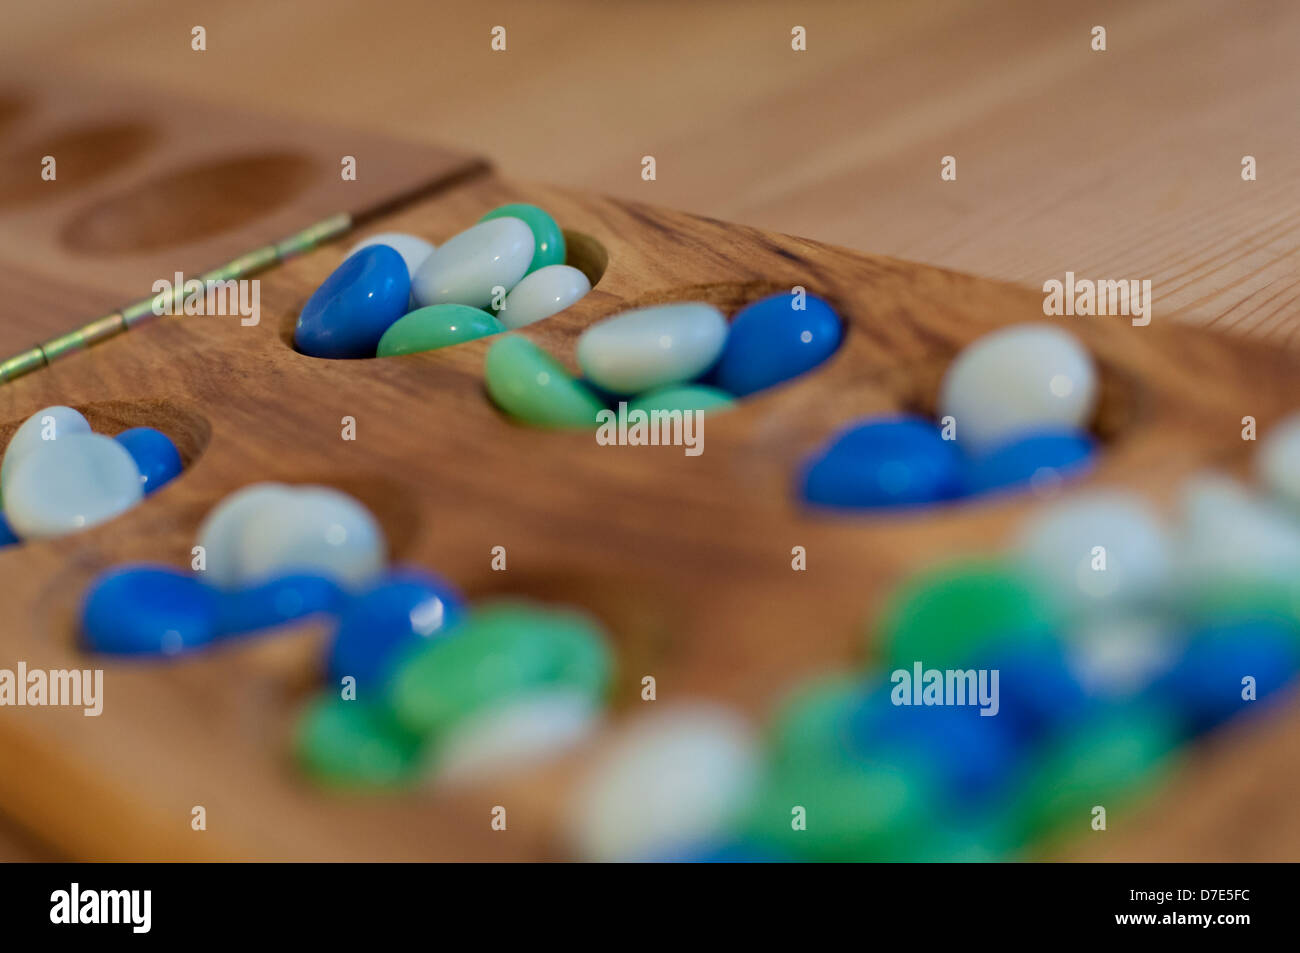 Mancala. Traditional board game. - Stock Image